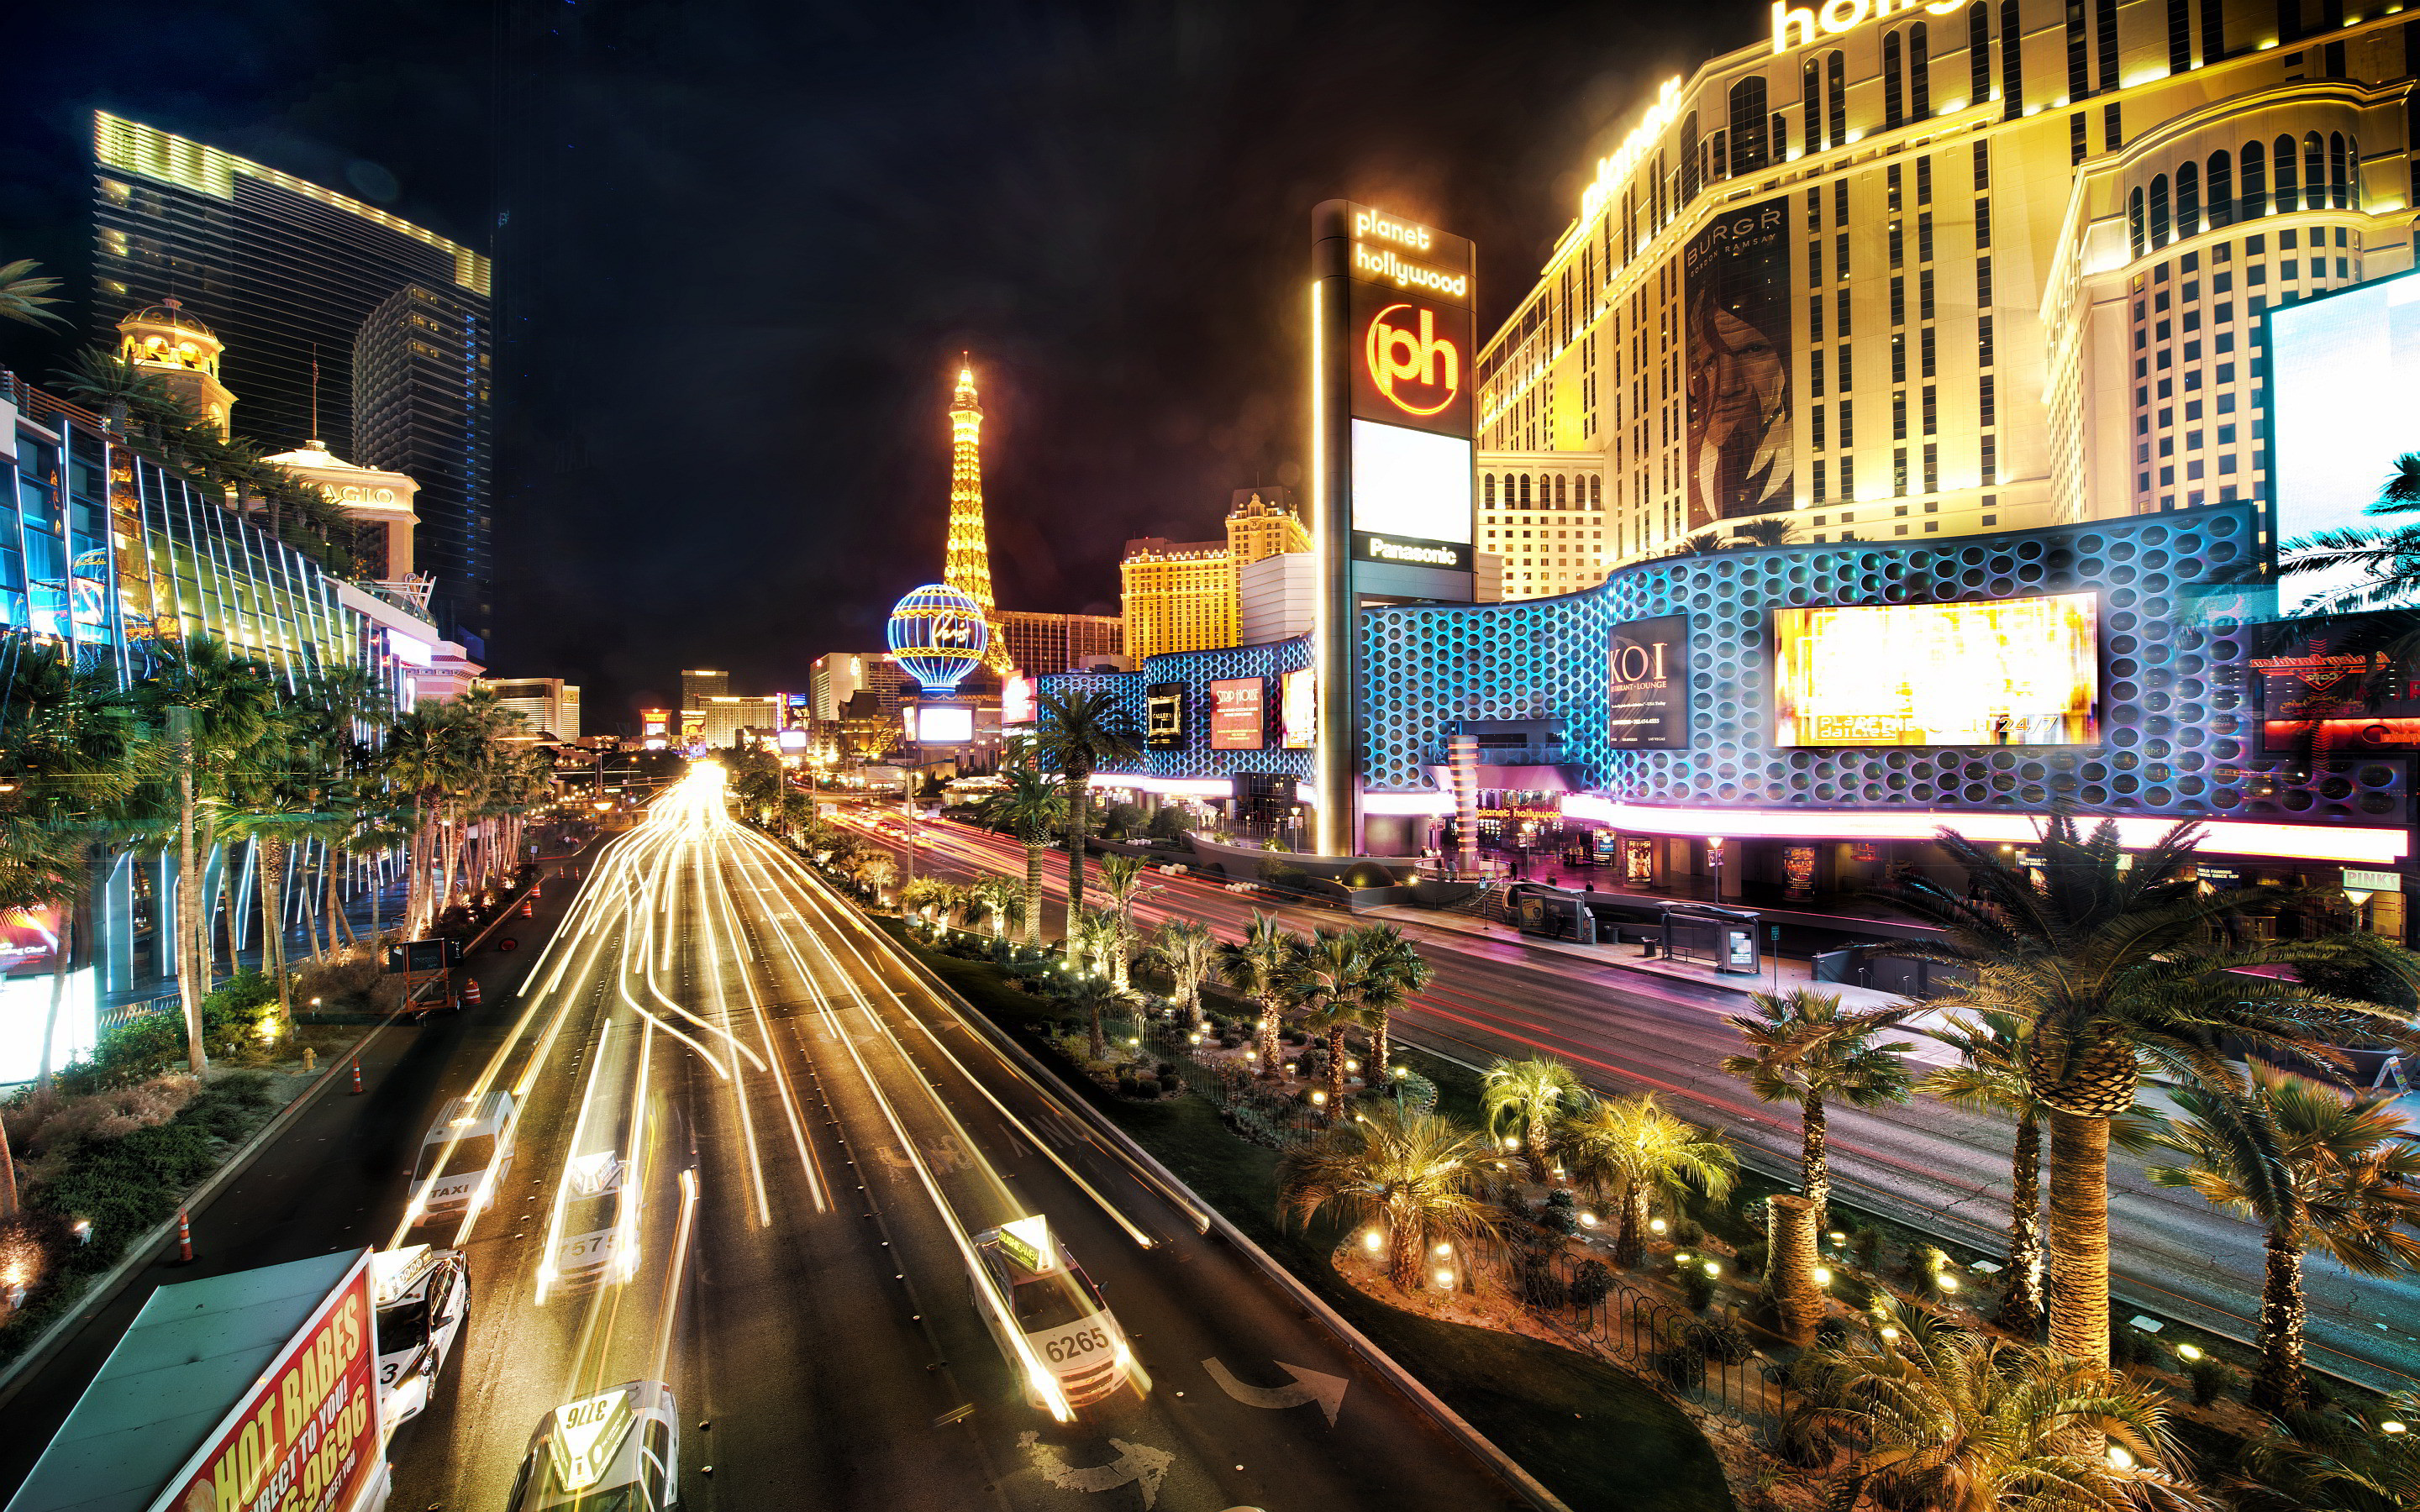 las vegas strip wallpapers pictures hd background wallpapers planet hollywood resort casino 2880x1800 download hd wallpaper wallpapertip las vegas strip wallpapers pictures hd